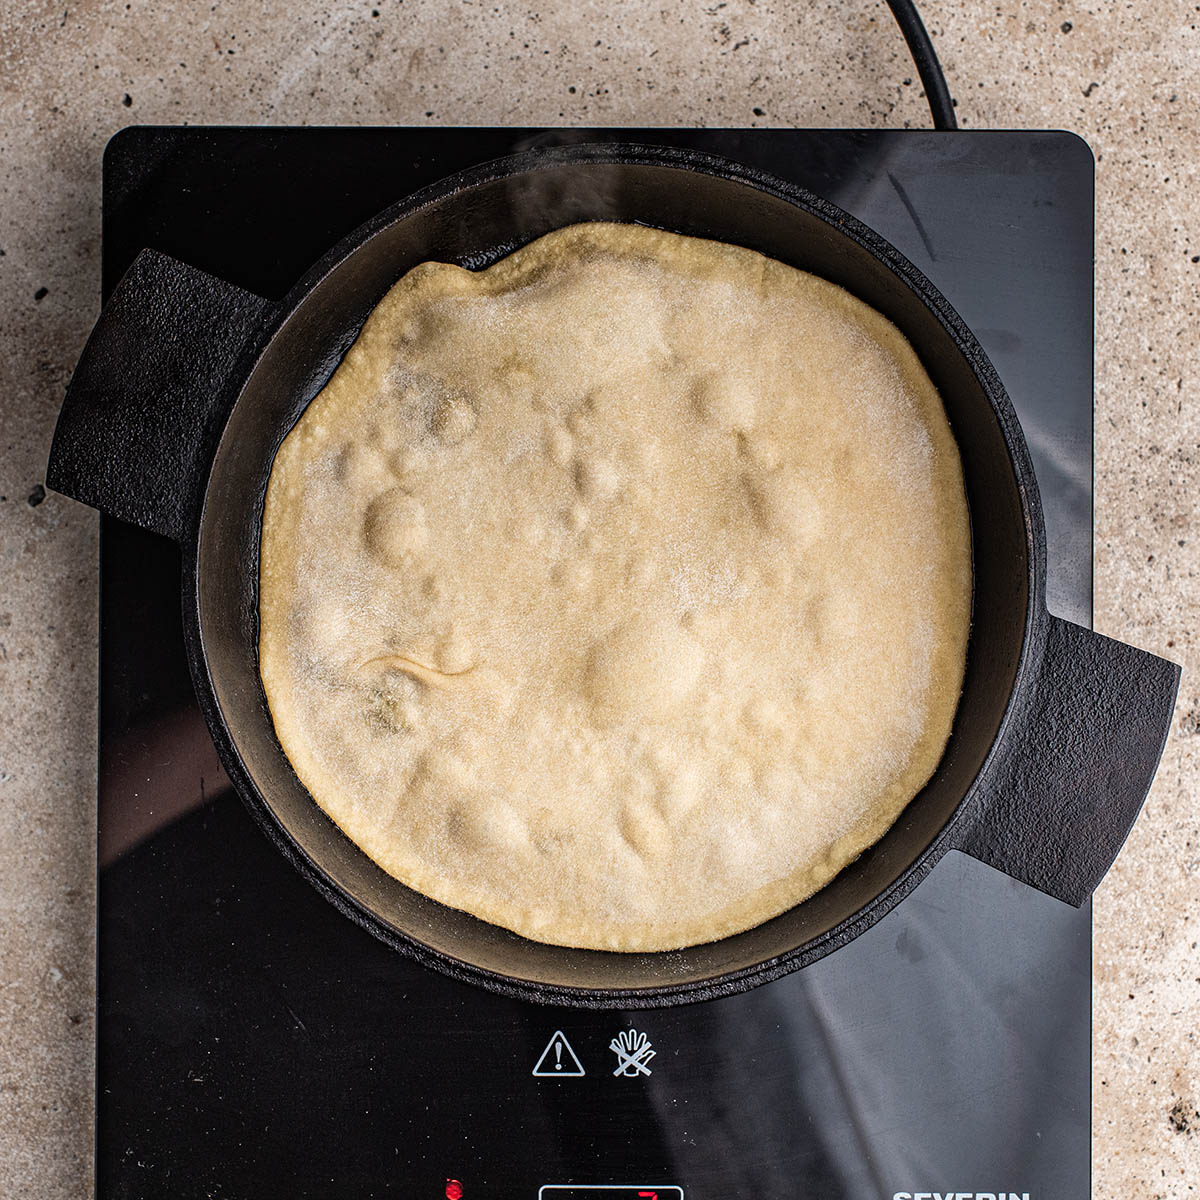 Tortilla in a frying pan before flipping.